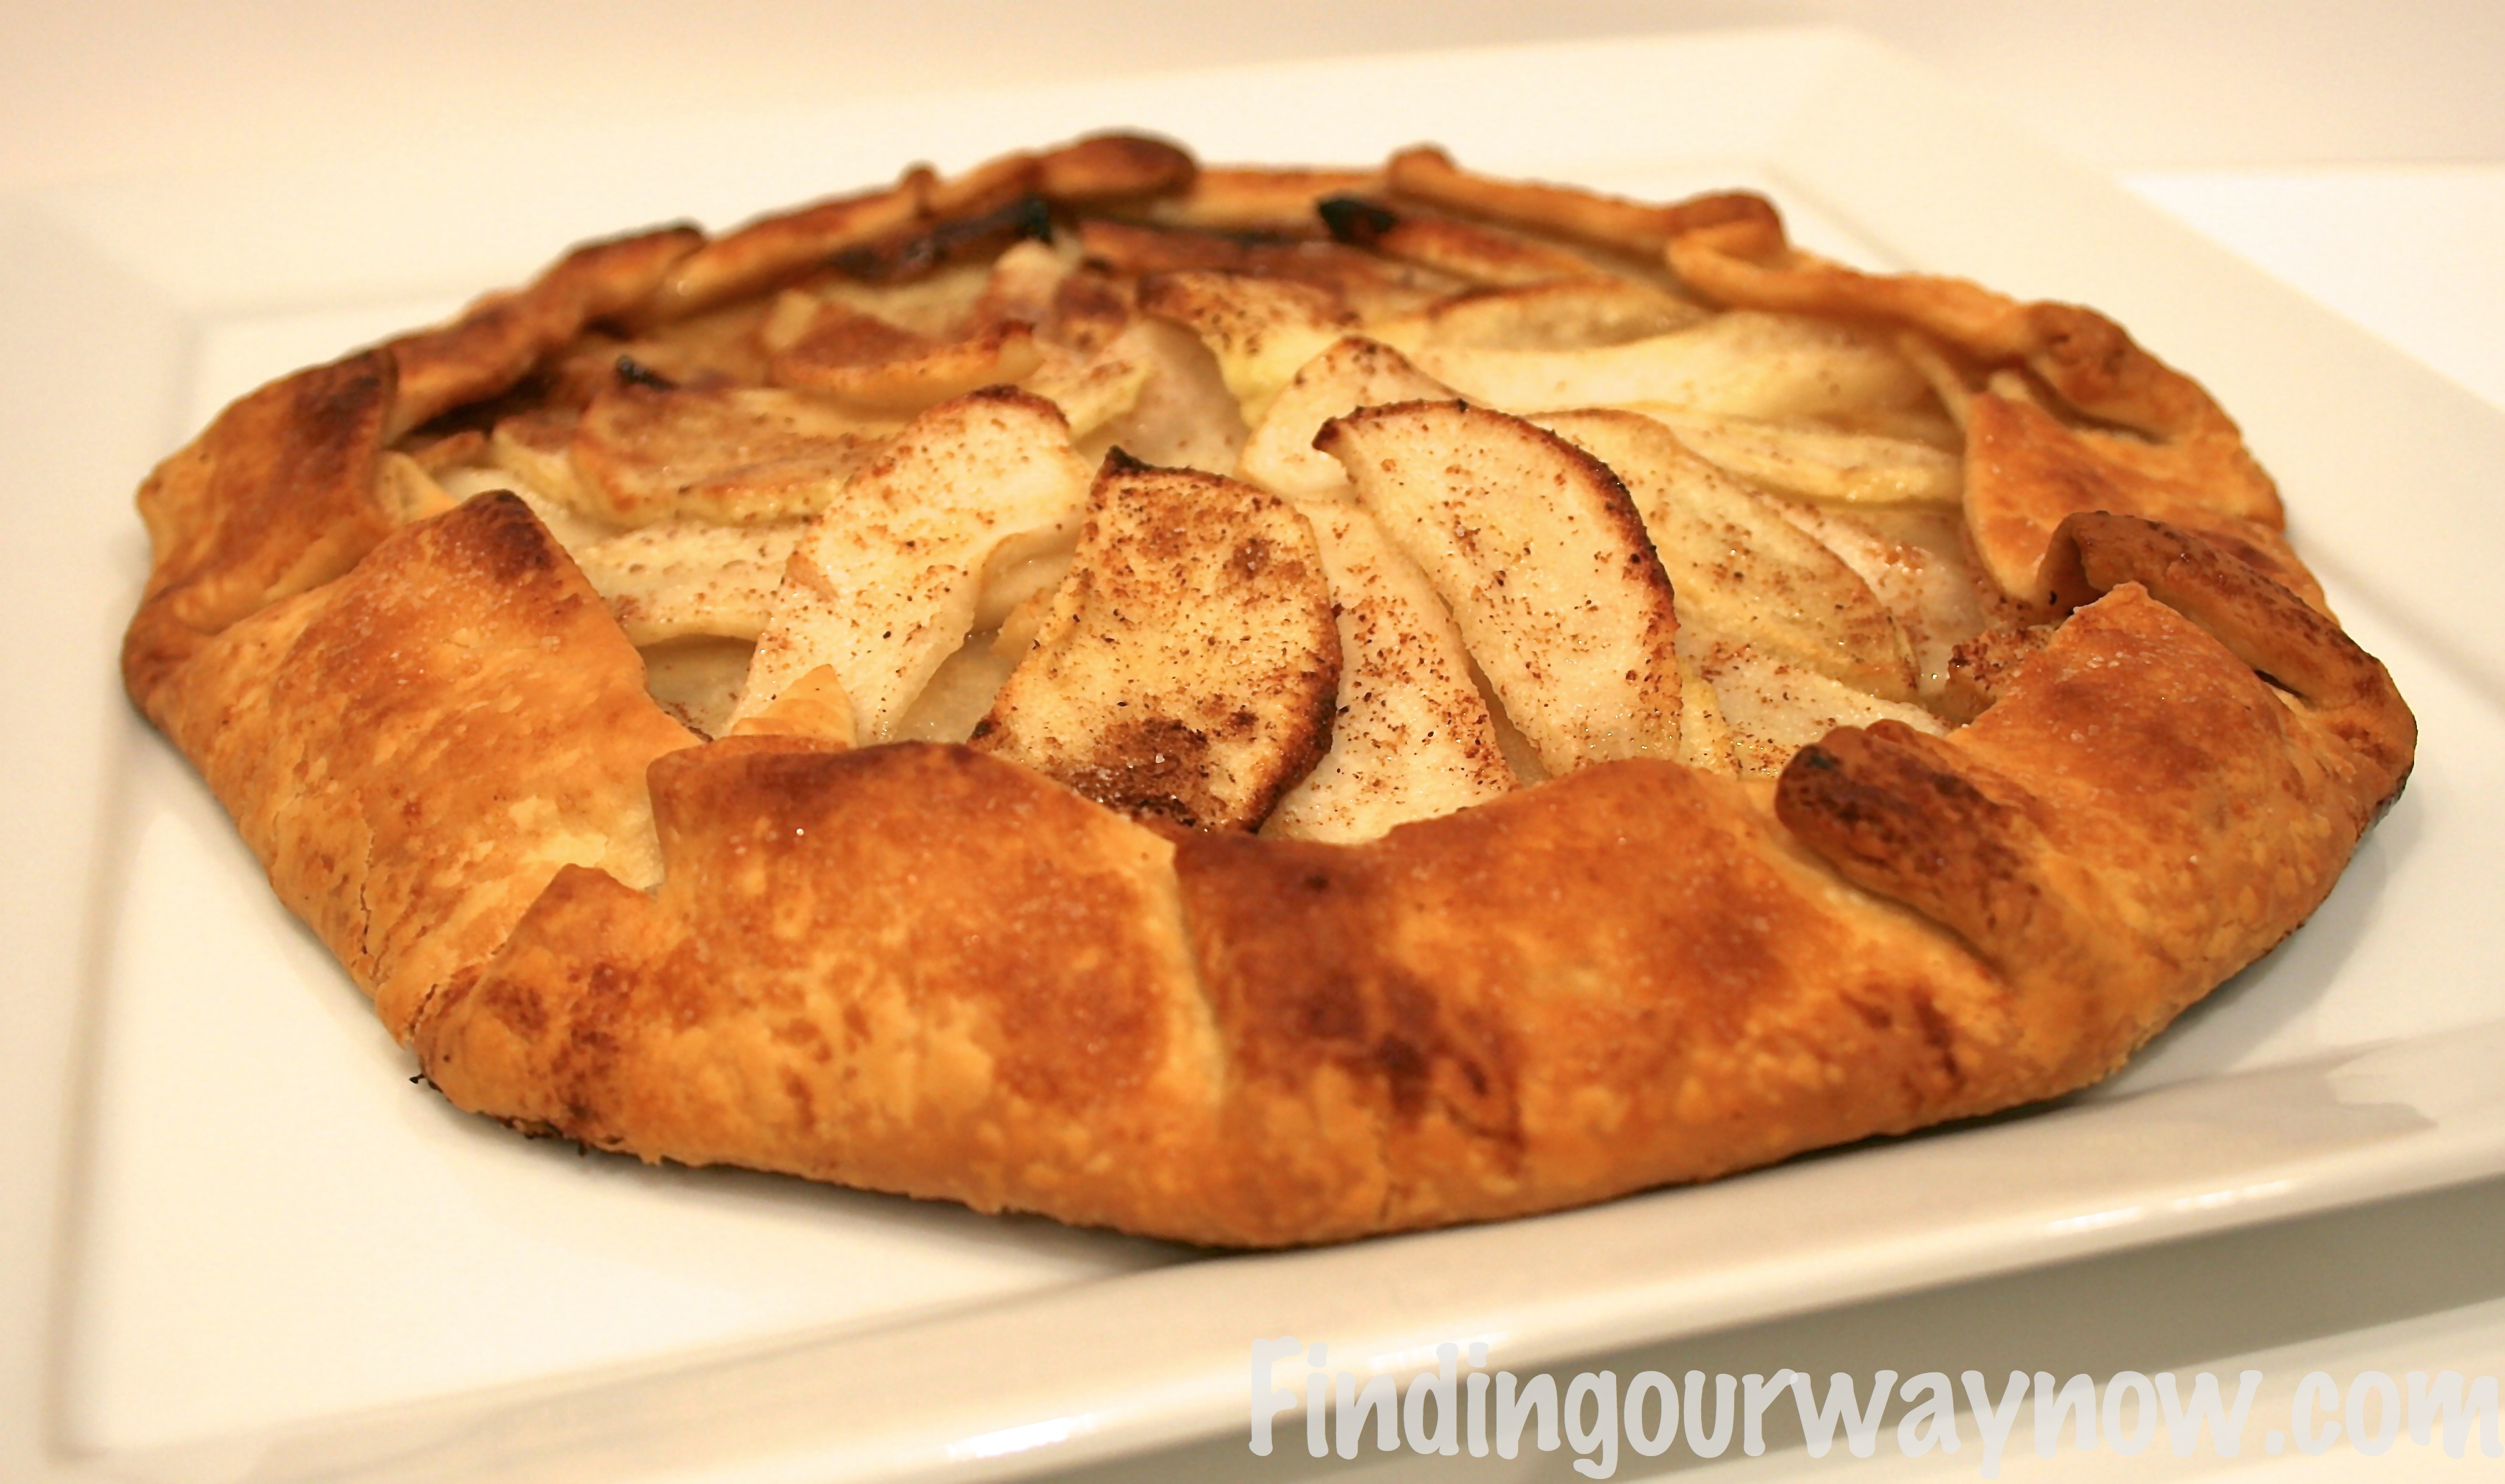 Rustic apple pear tart recipe finding our way now for Apple pear recipes easy